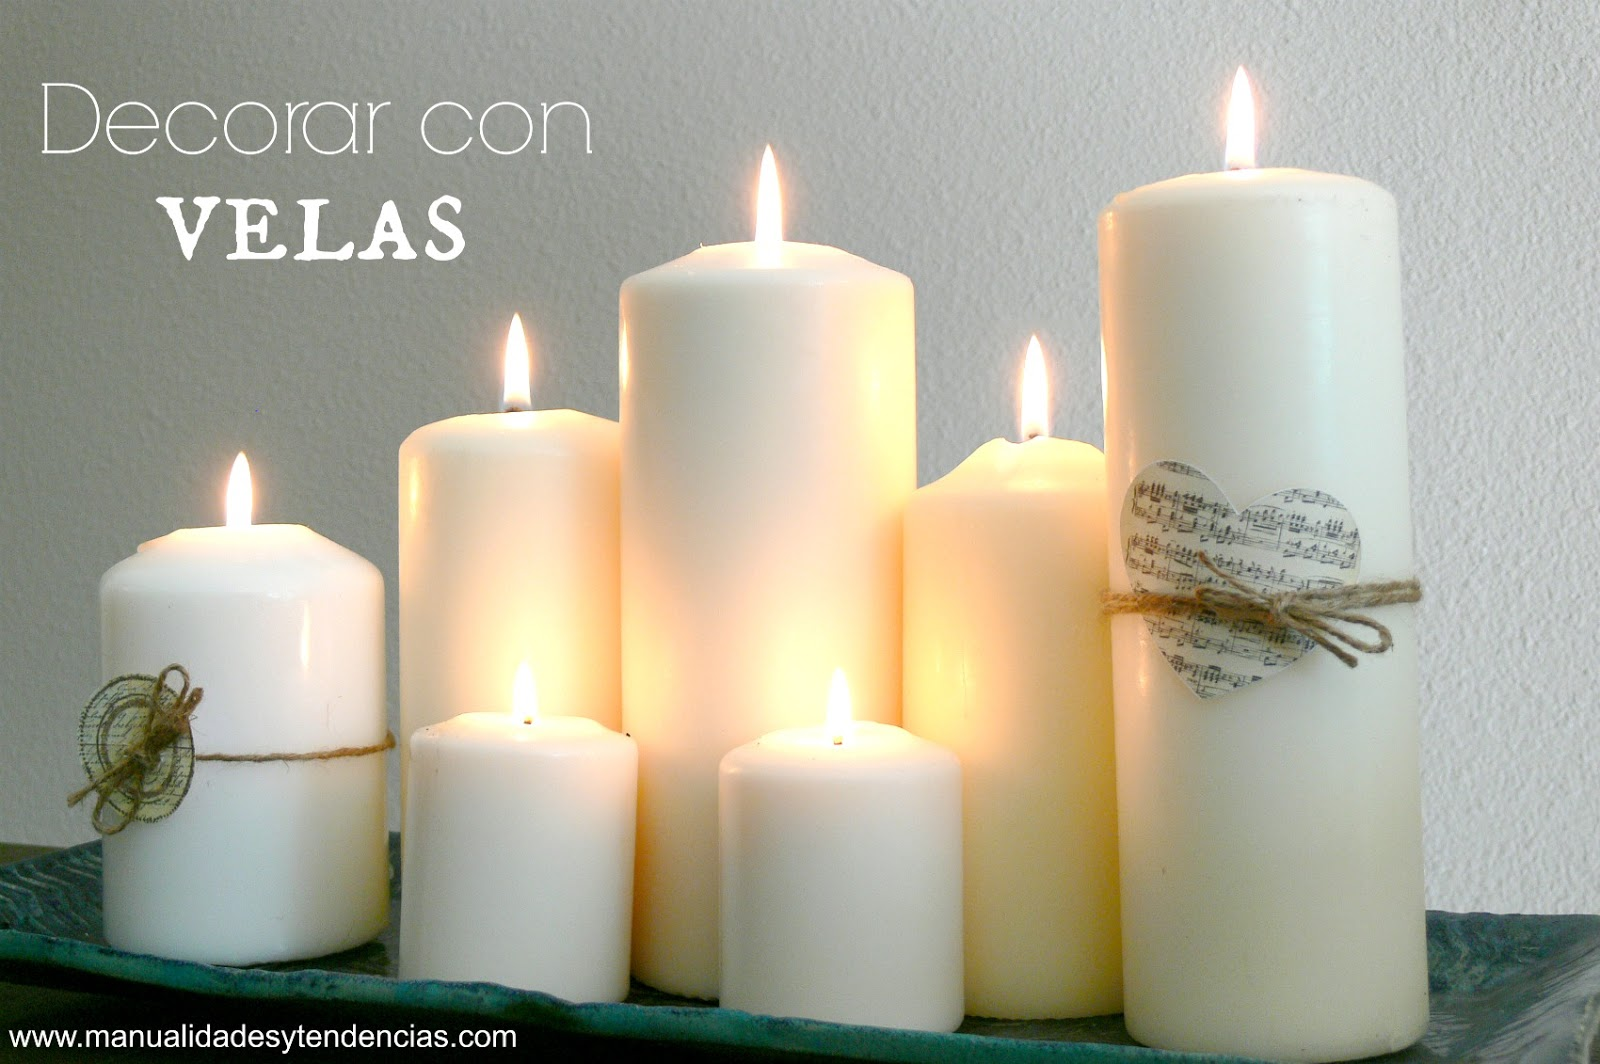 Decorar con velas candle decoration ideas handbox - Decoracion con velas ...